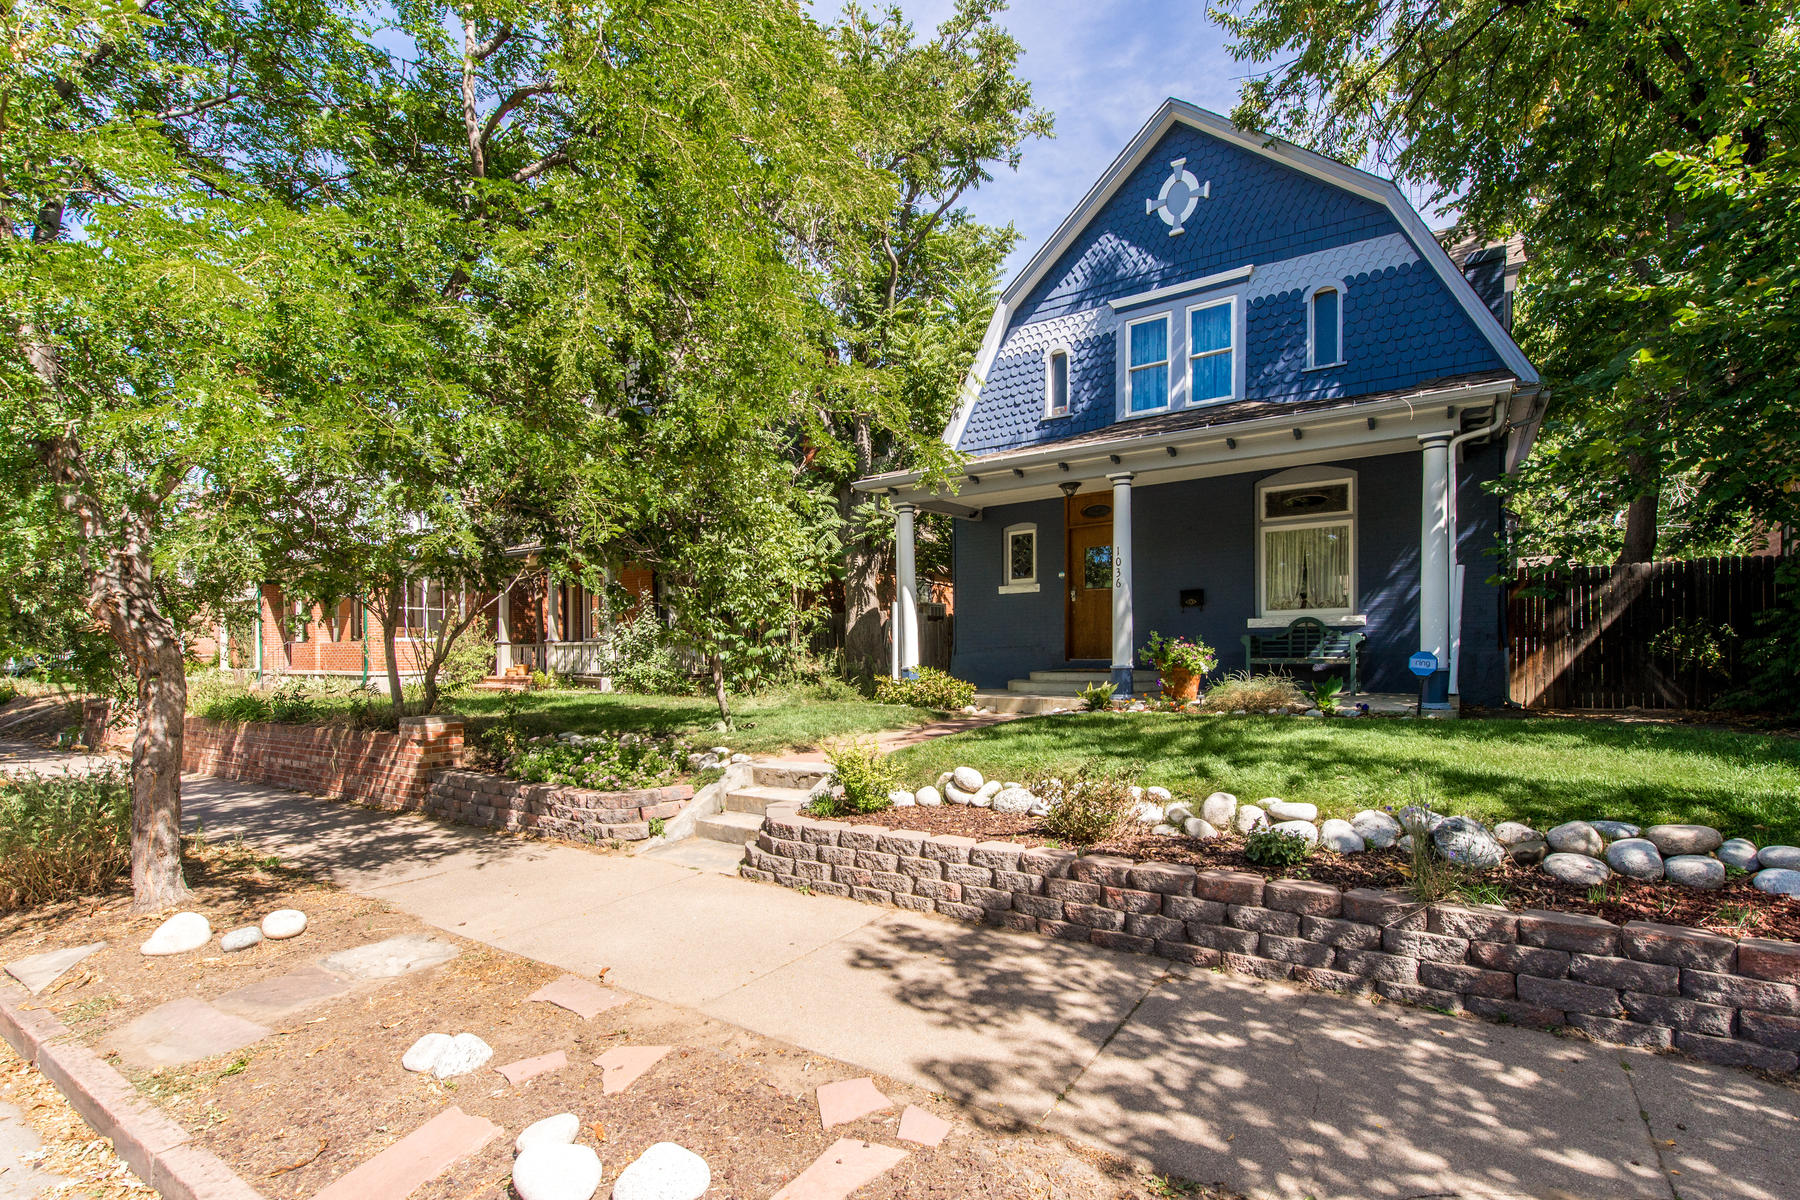 Single Family Home for Sale at Turn Of The Century Victorian Charmer Perfectly Situated In Washington Park West 1036 South Pearl Street, Washington Park West, Denver, Colorado, 80209 United States